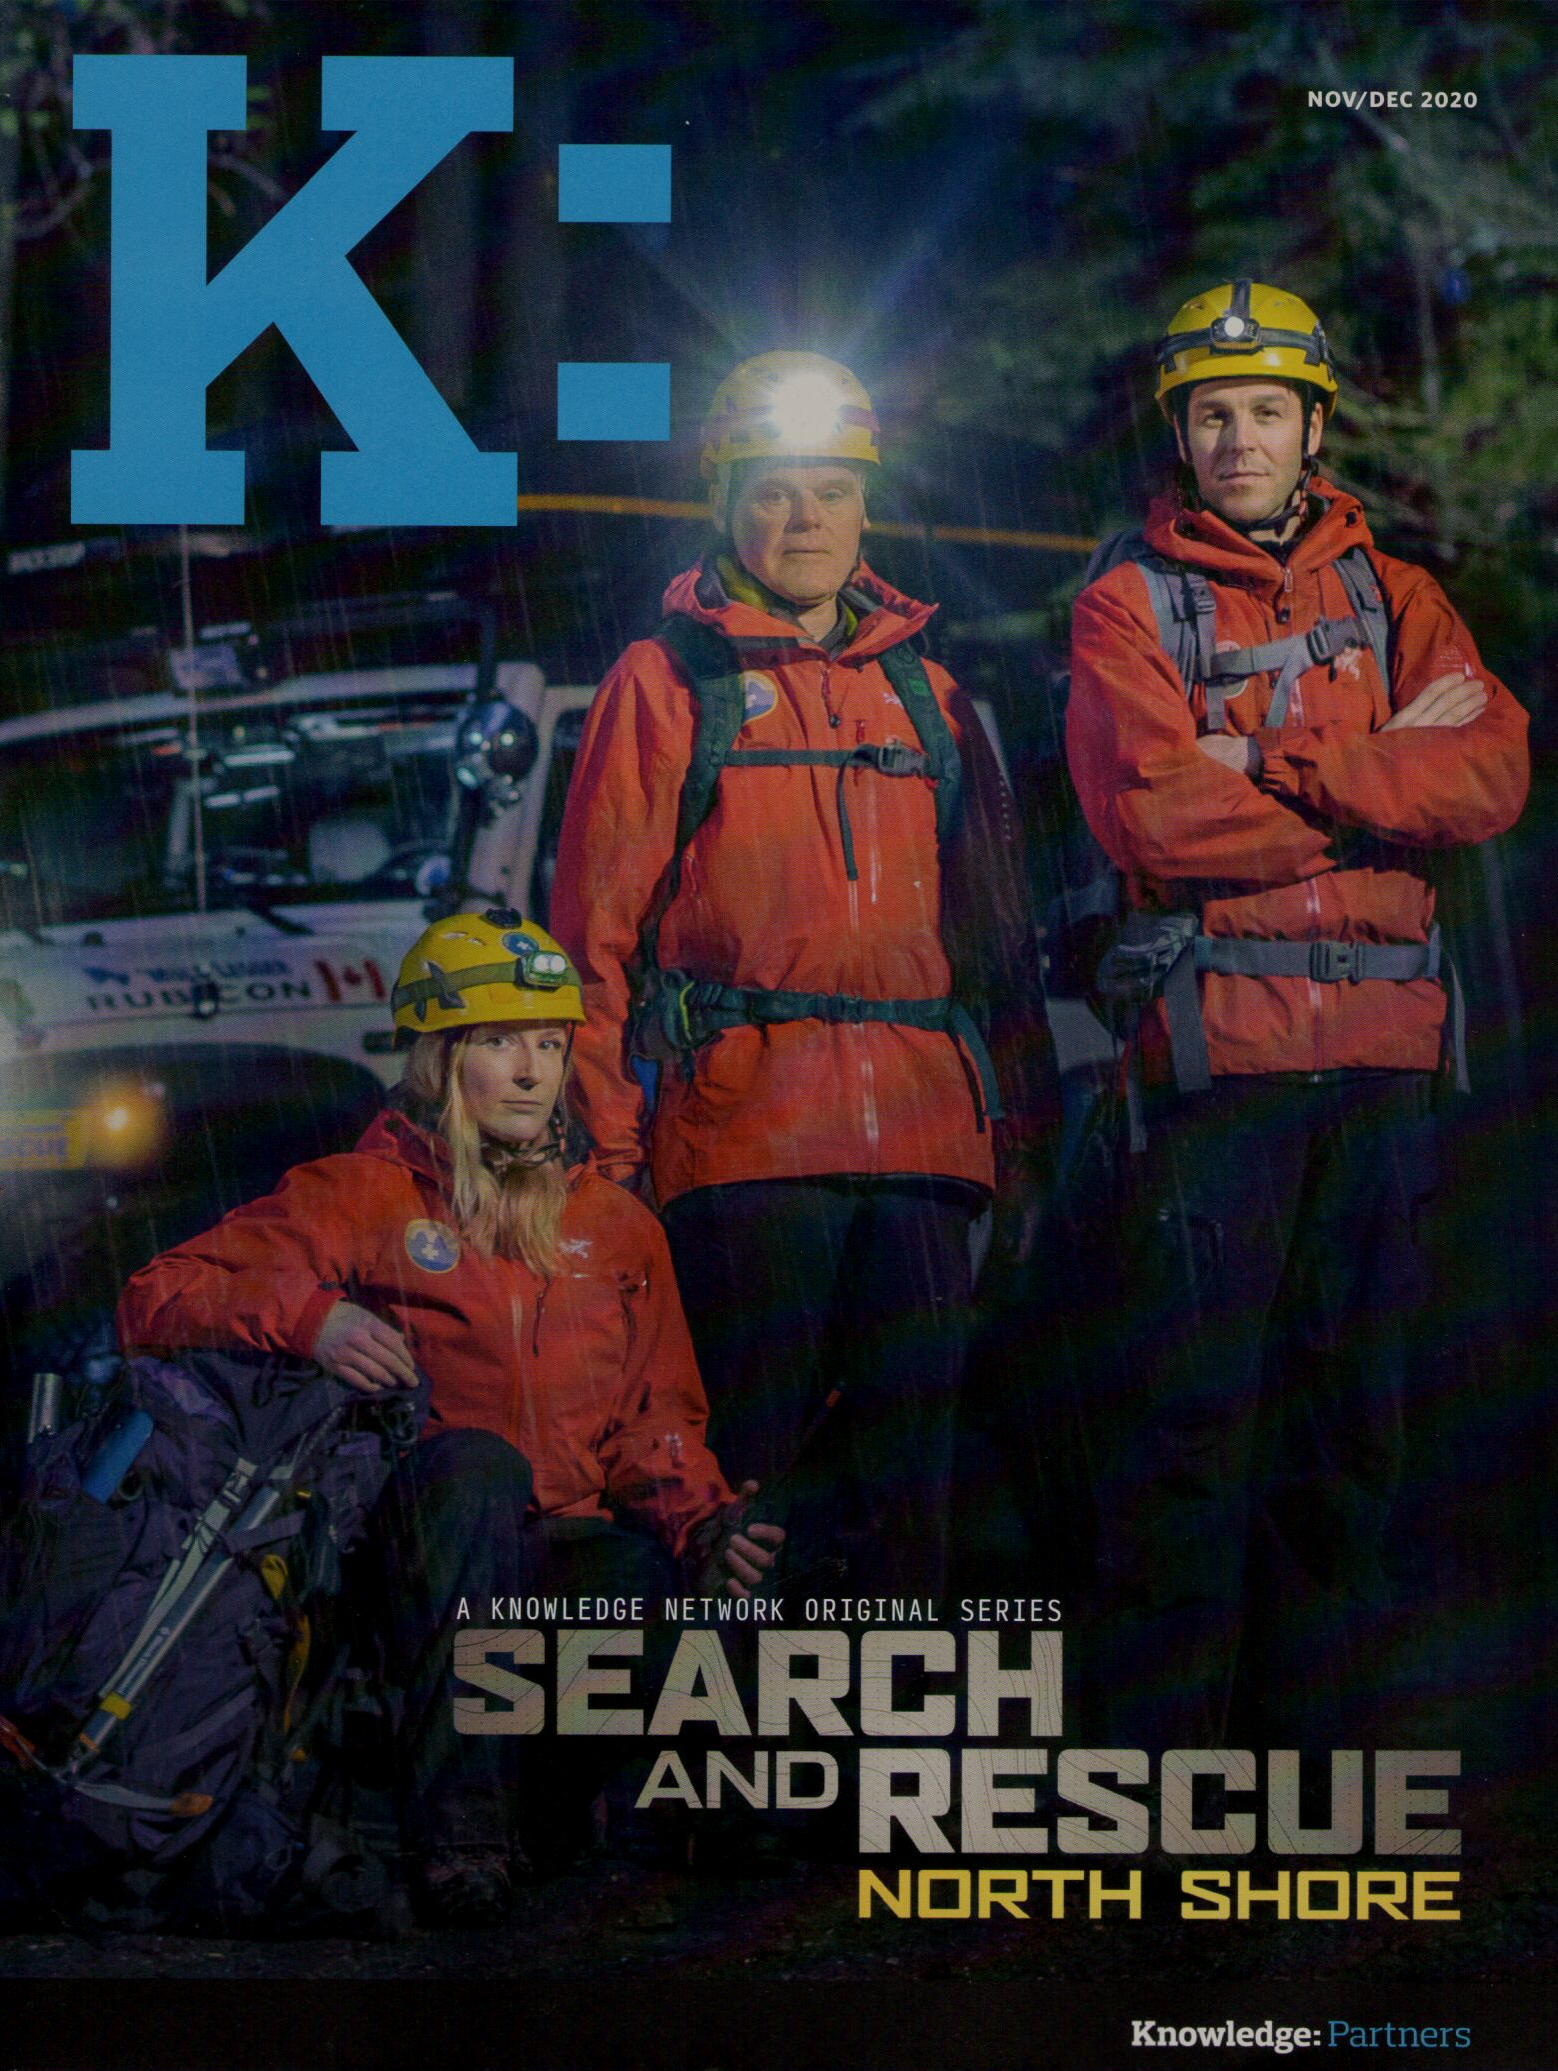 Search and Rescue North Shore